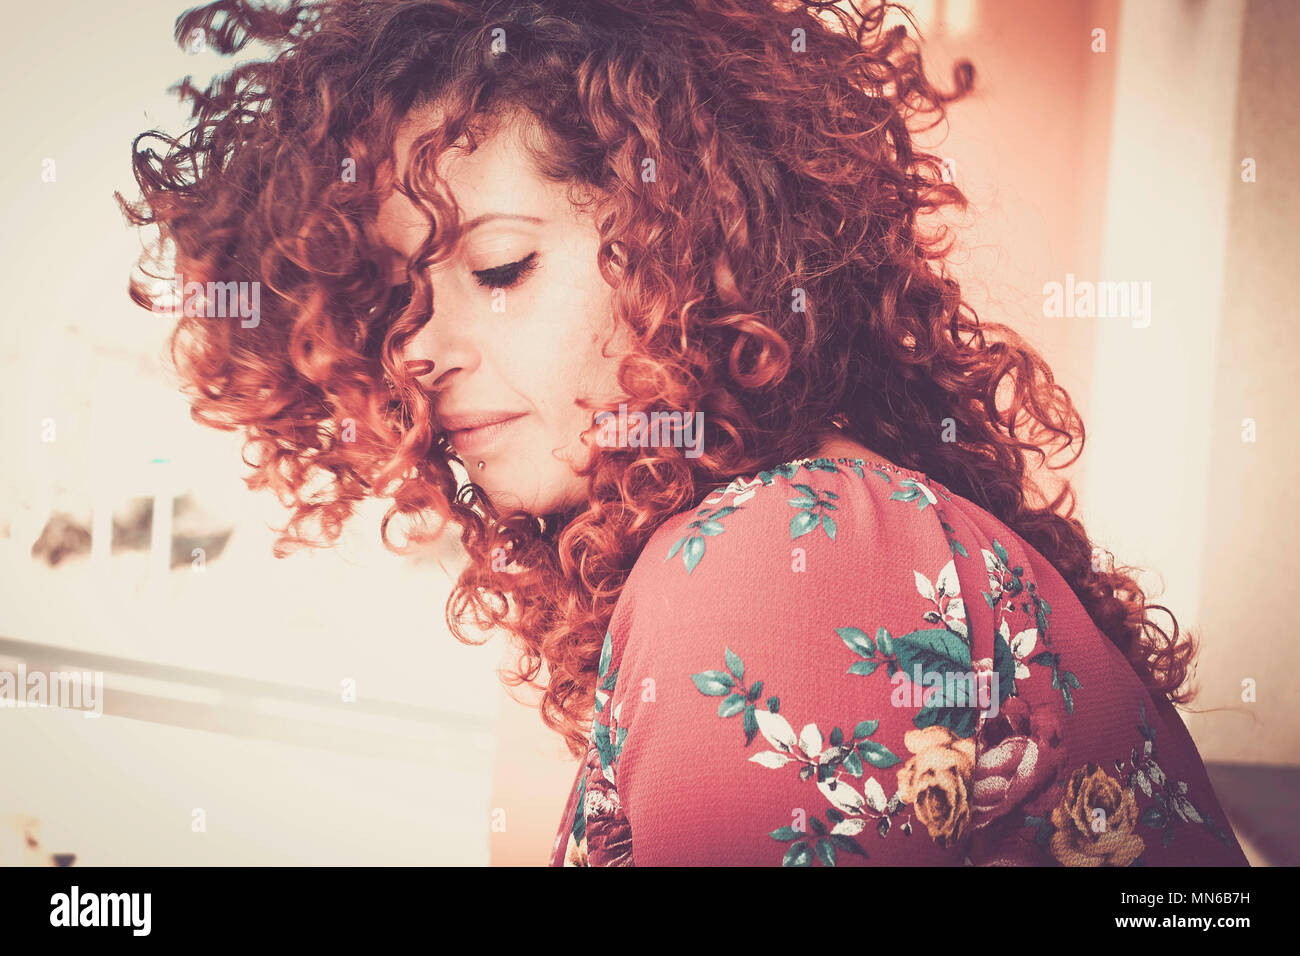 nice red portrait of a red hair girl lost in her thoughts alone at home. warm colors and tones, closed eyes and lonely, beautiful cacuasian young woma - Stock Image